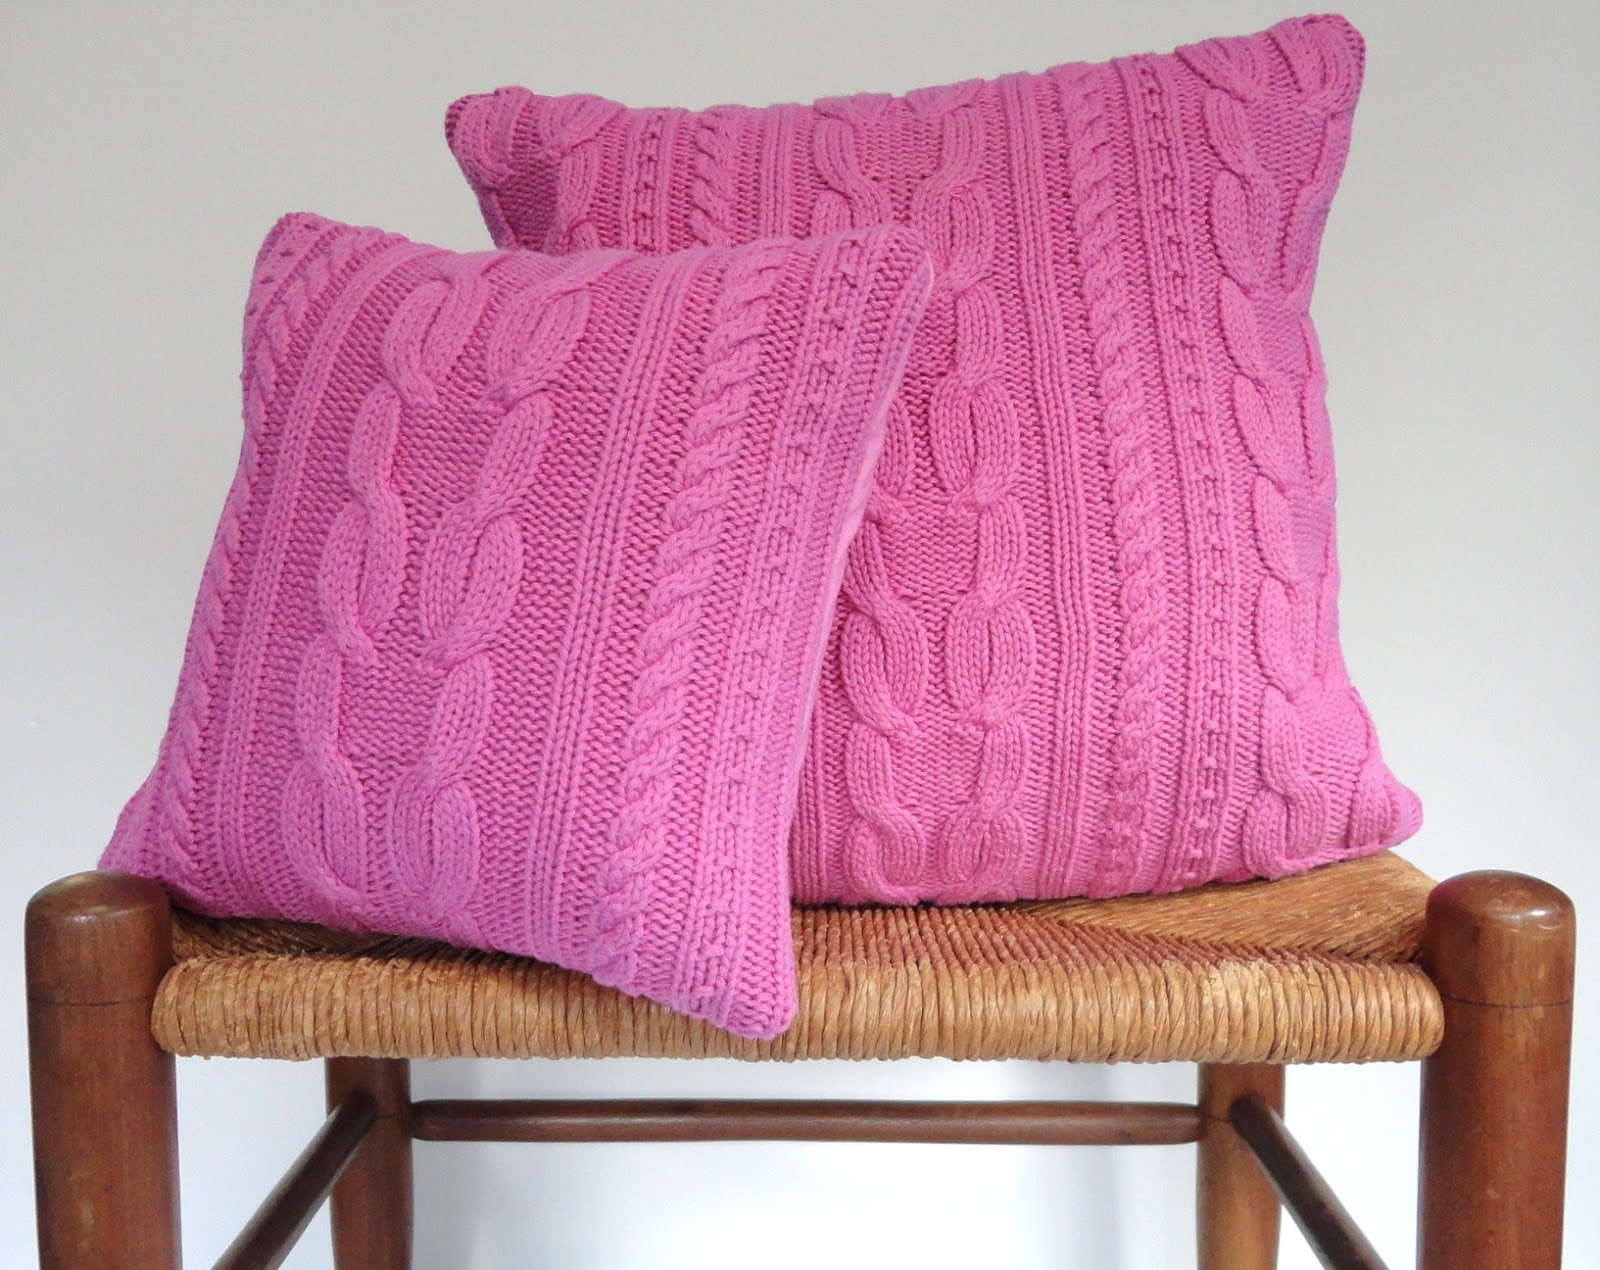 Days at Buttermilk Cottage: More Sweater Pillows!